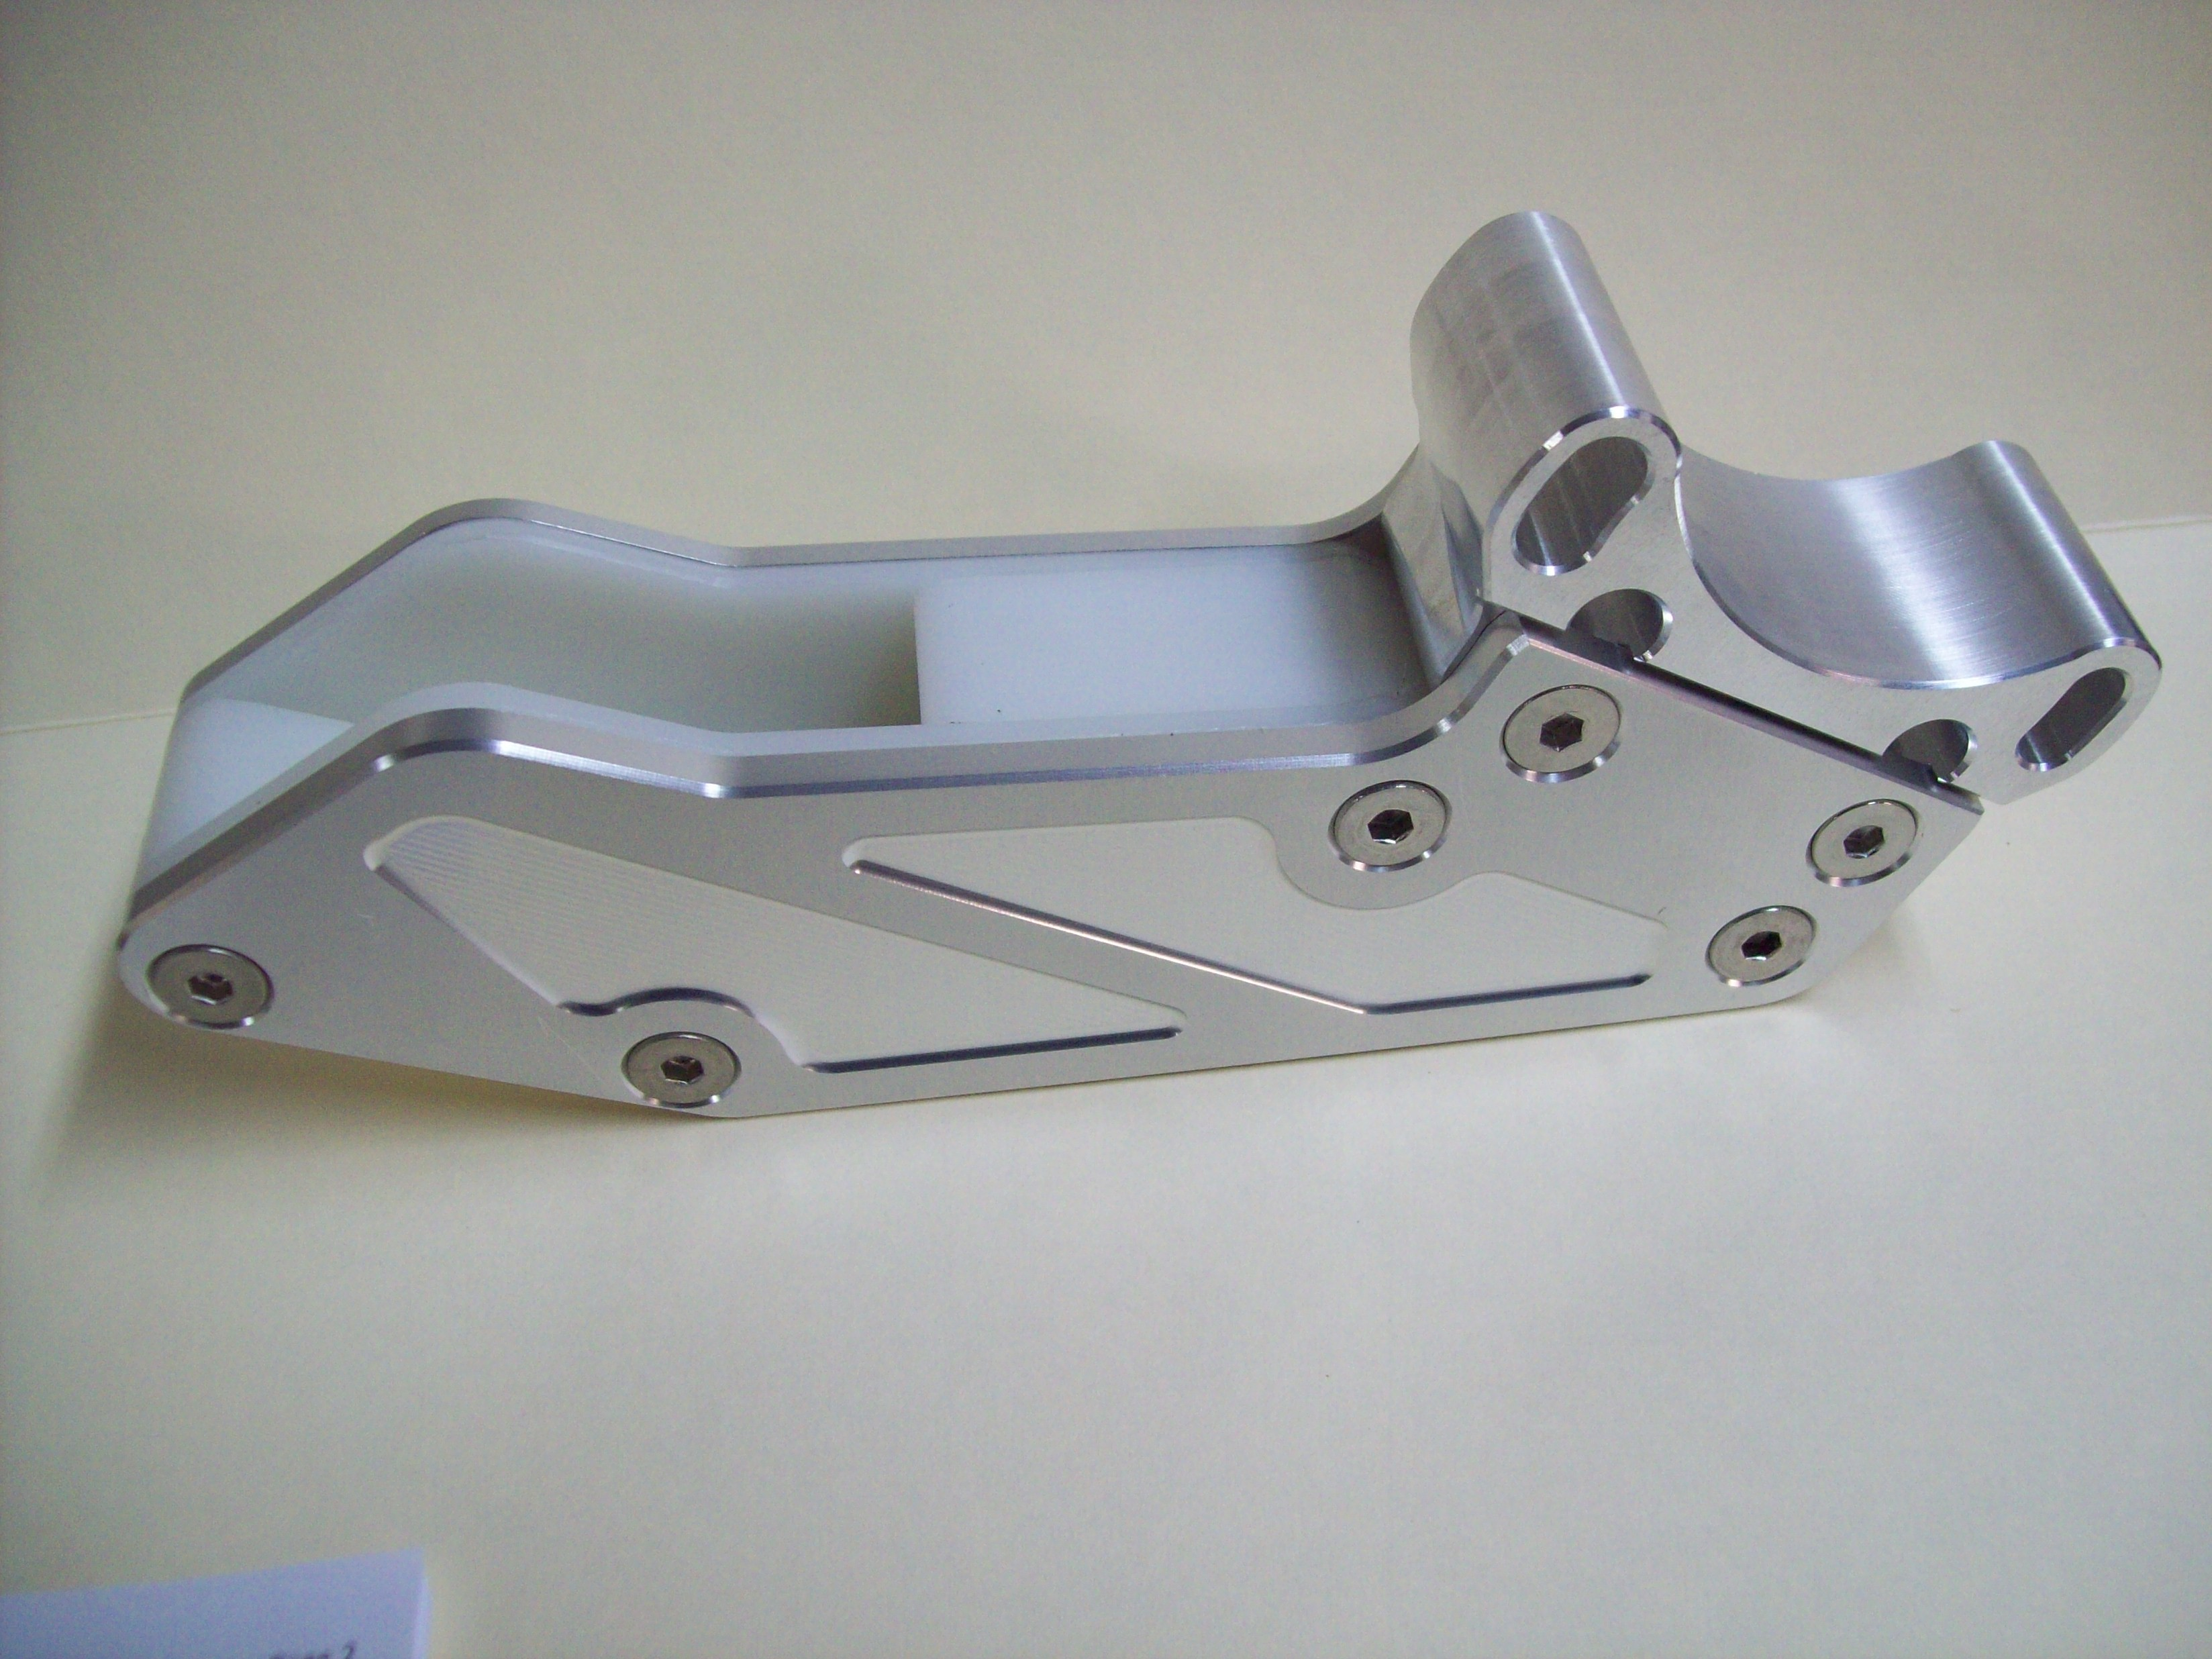 New Reproduction Billet Alloy Chain Guide that fits the 1983 1984 Maico 250 490